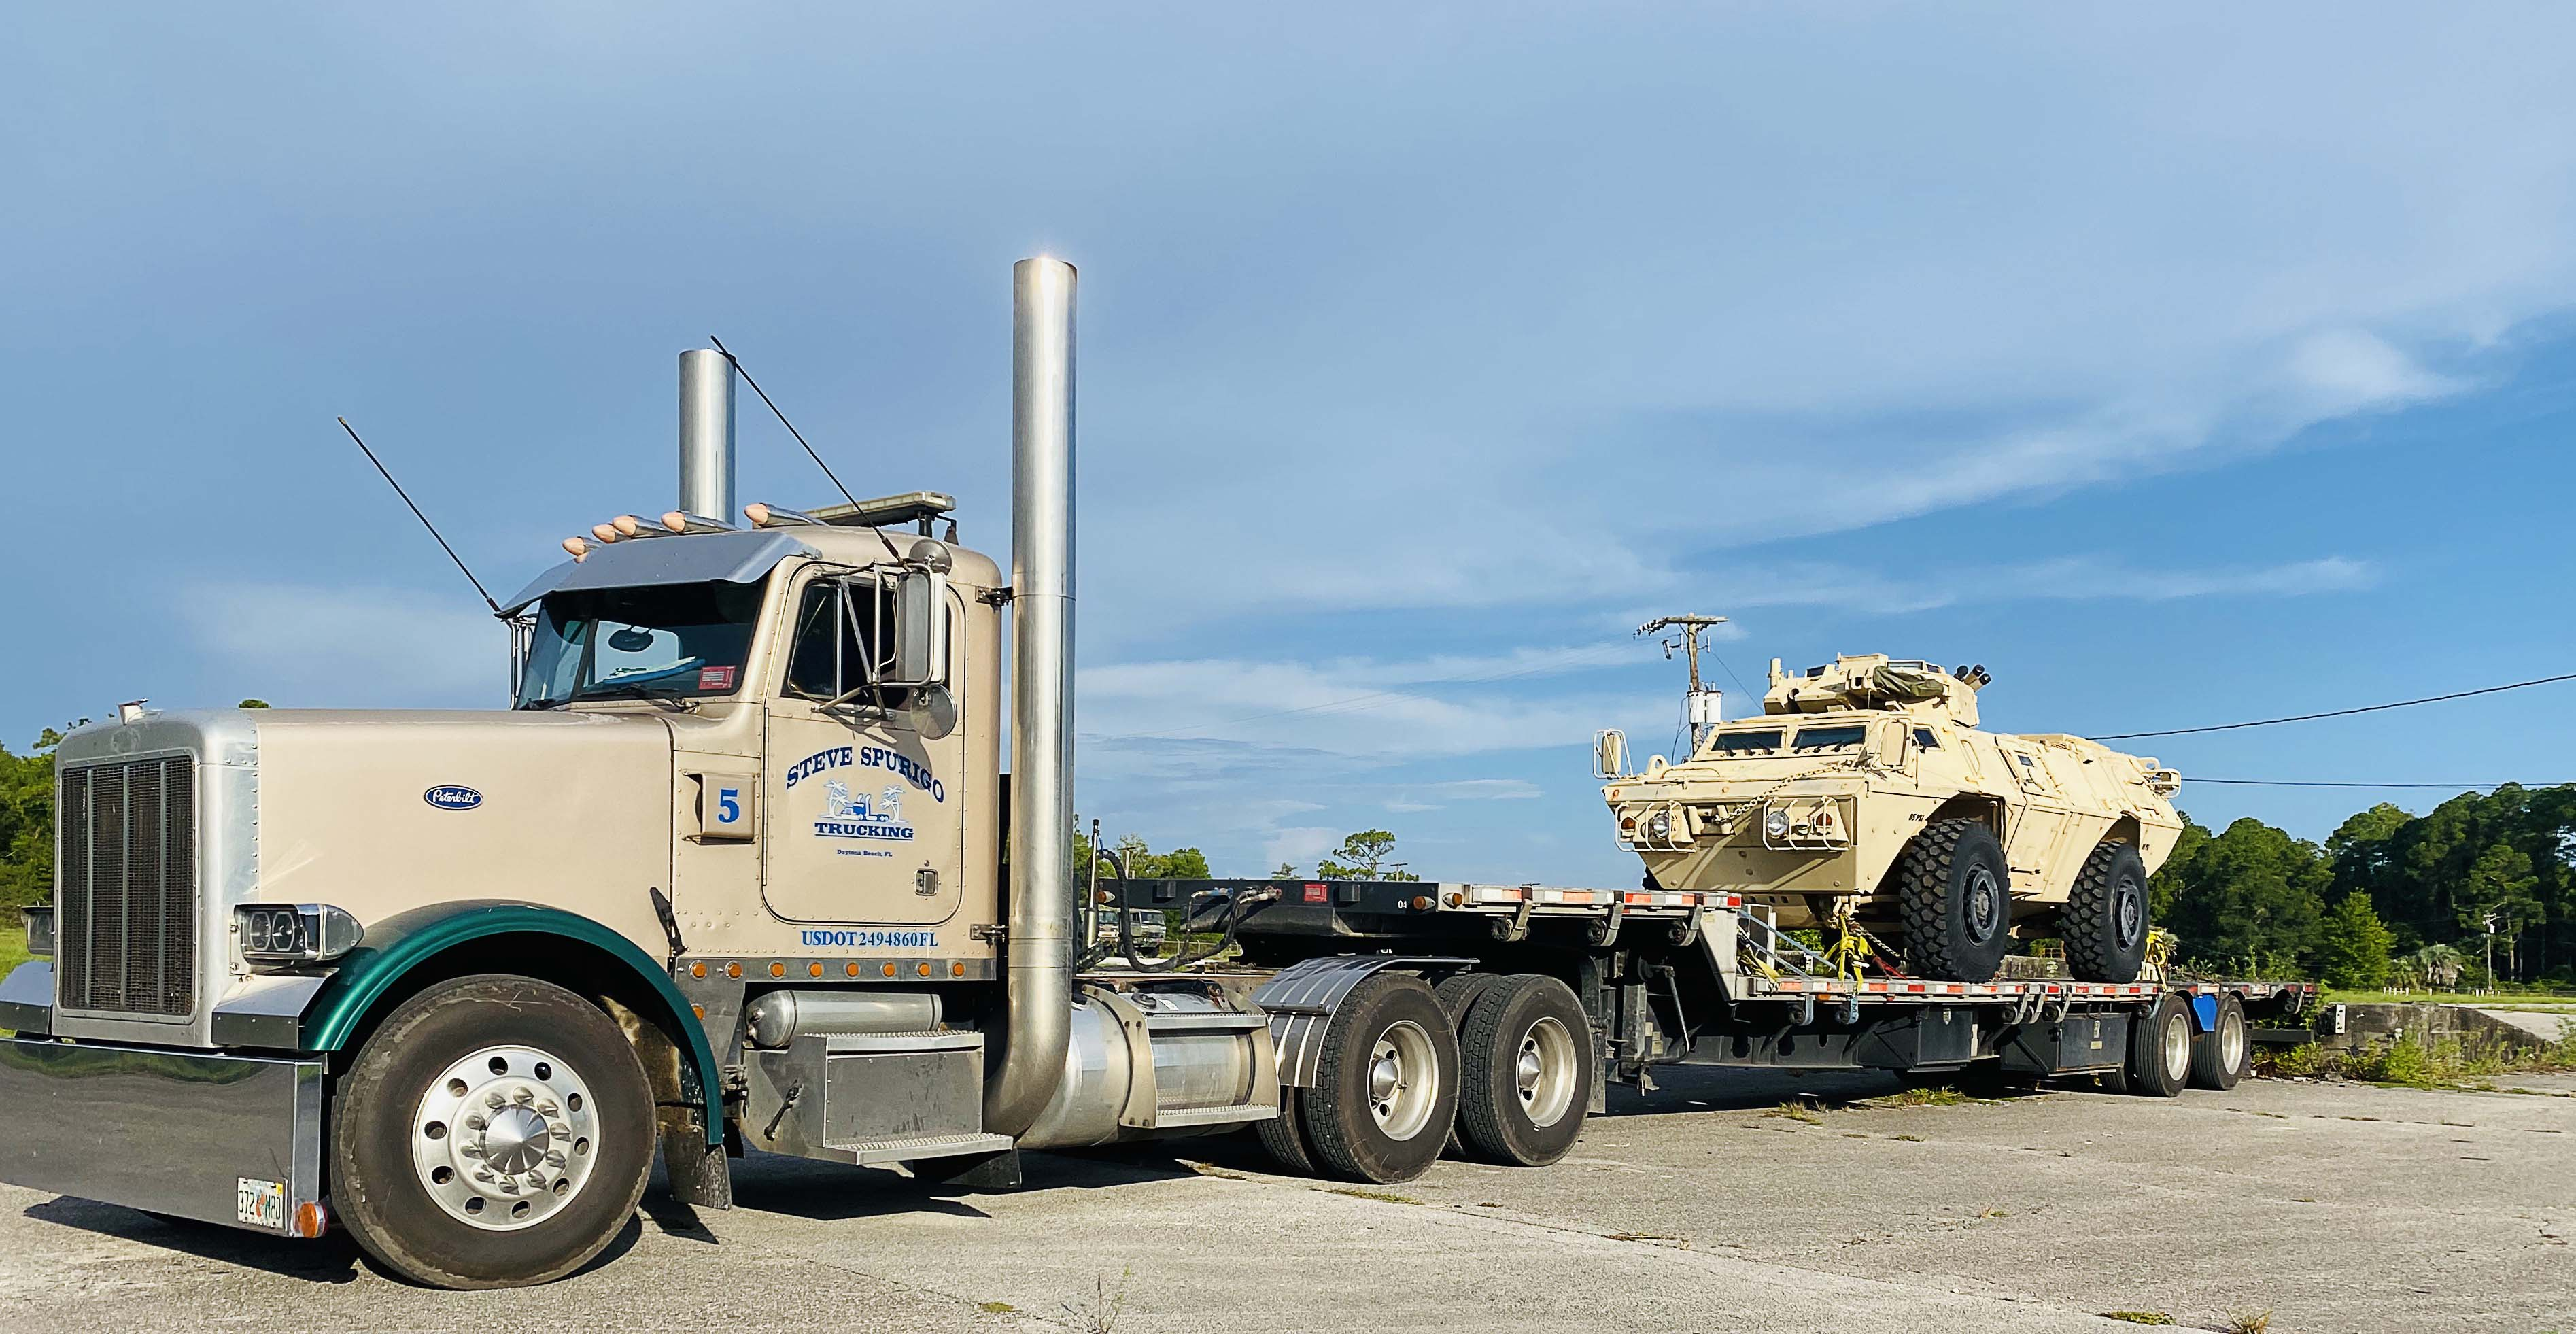 An oversized vehicle hauls a troop transport